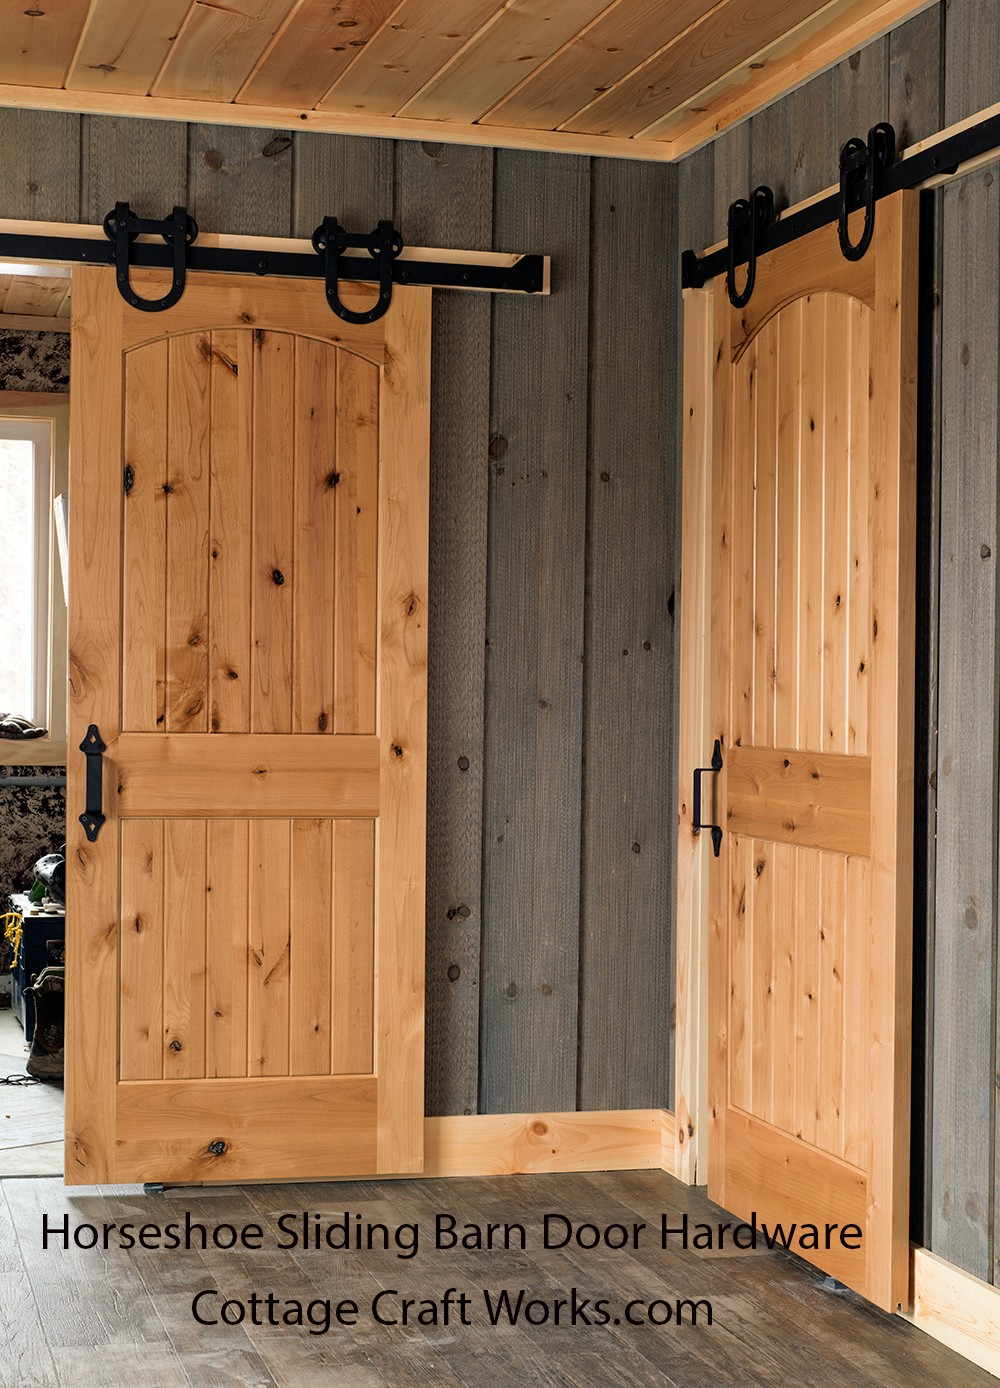 Usa Sliding Barn Door Hardware For Up To 7 Openings